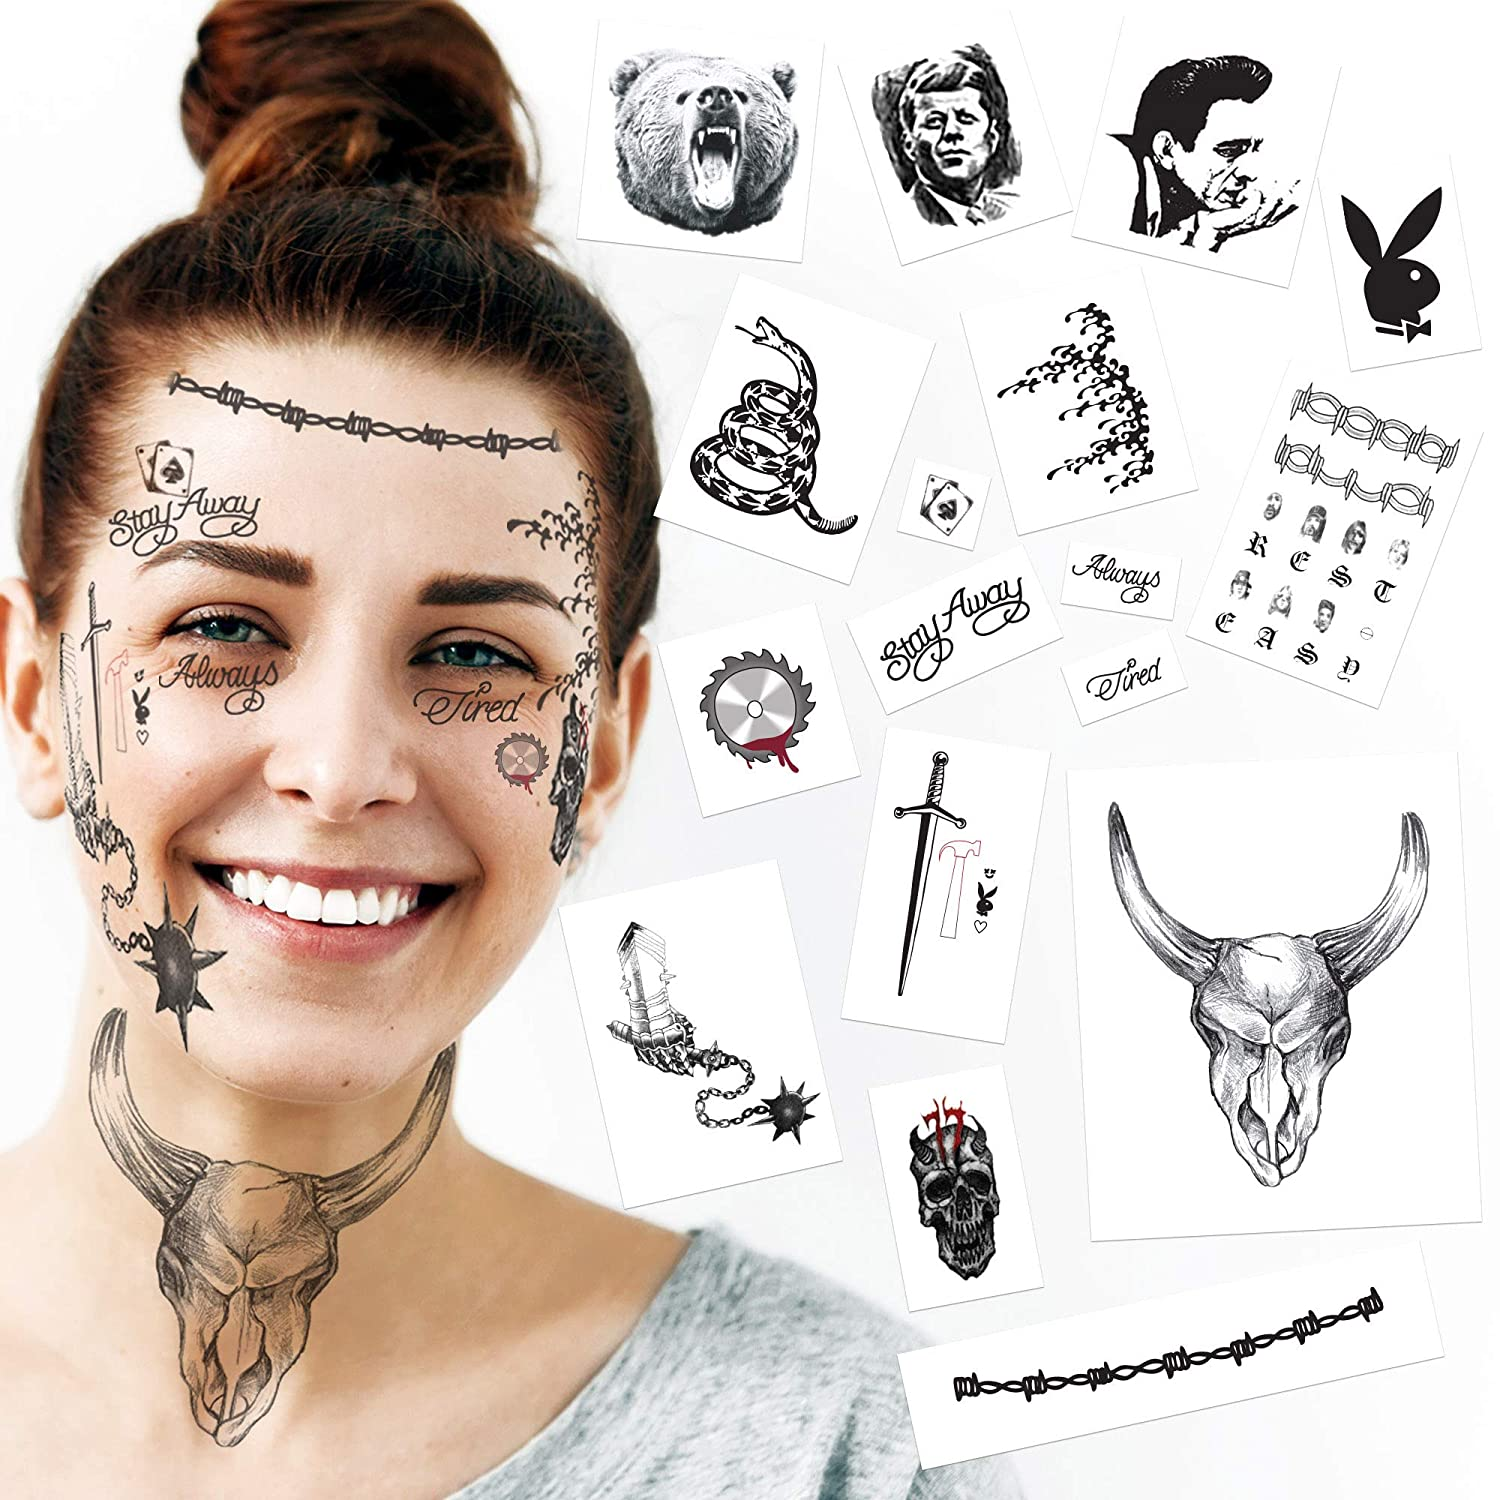 2020 Rapper Inspired Temporary Tattoos   35 Face, Neck & Hand Tattoos Including NEW 2020 Skull, Gauntlet, Buzzsaw & Hammer   Halloween Costume   Skin Safe   MADE IN THE USA